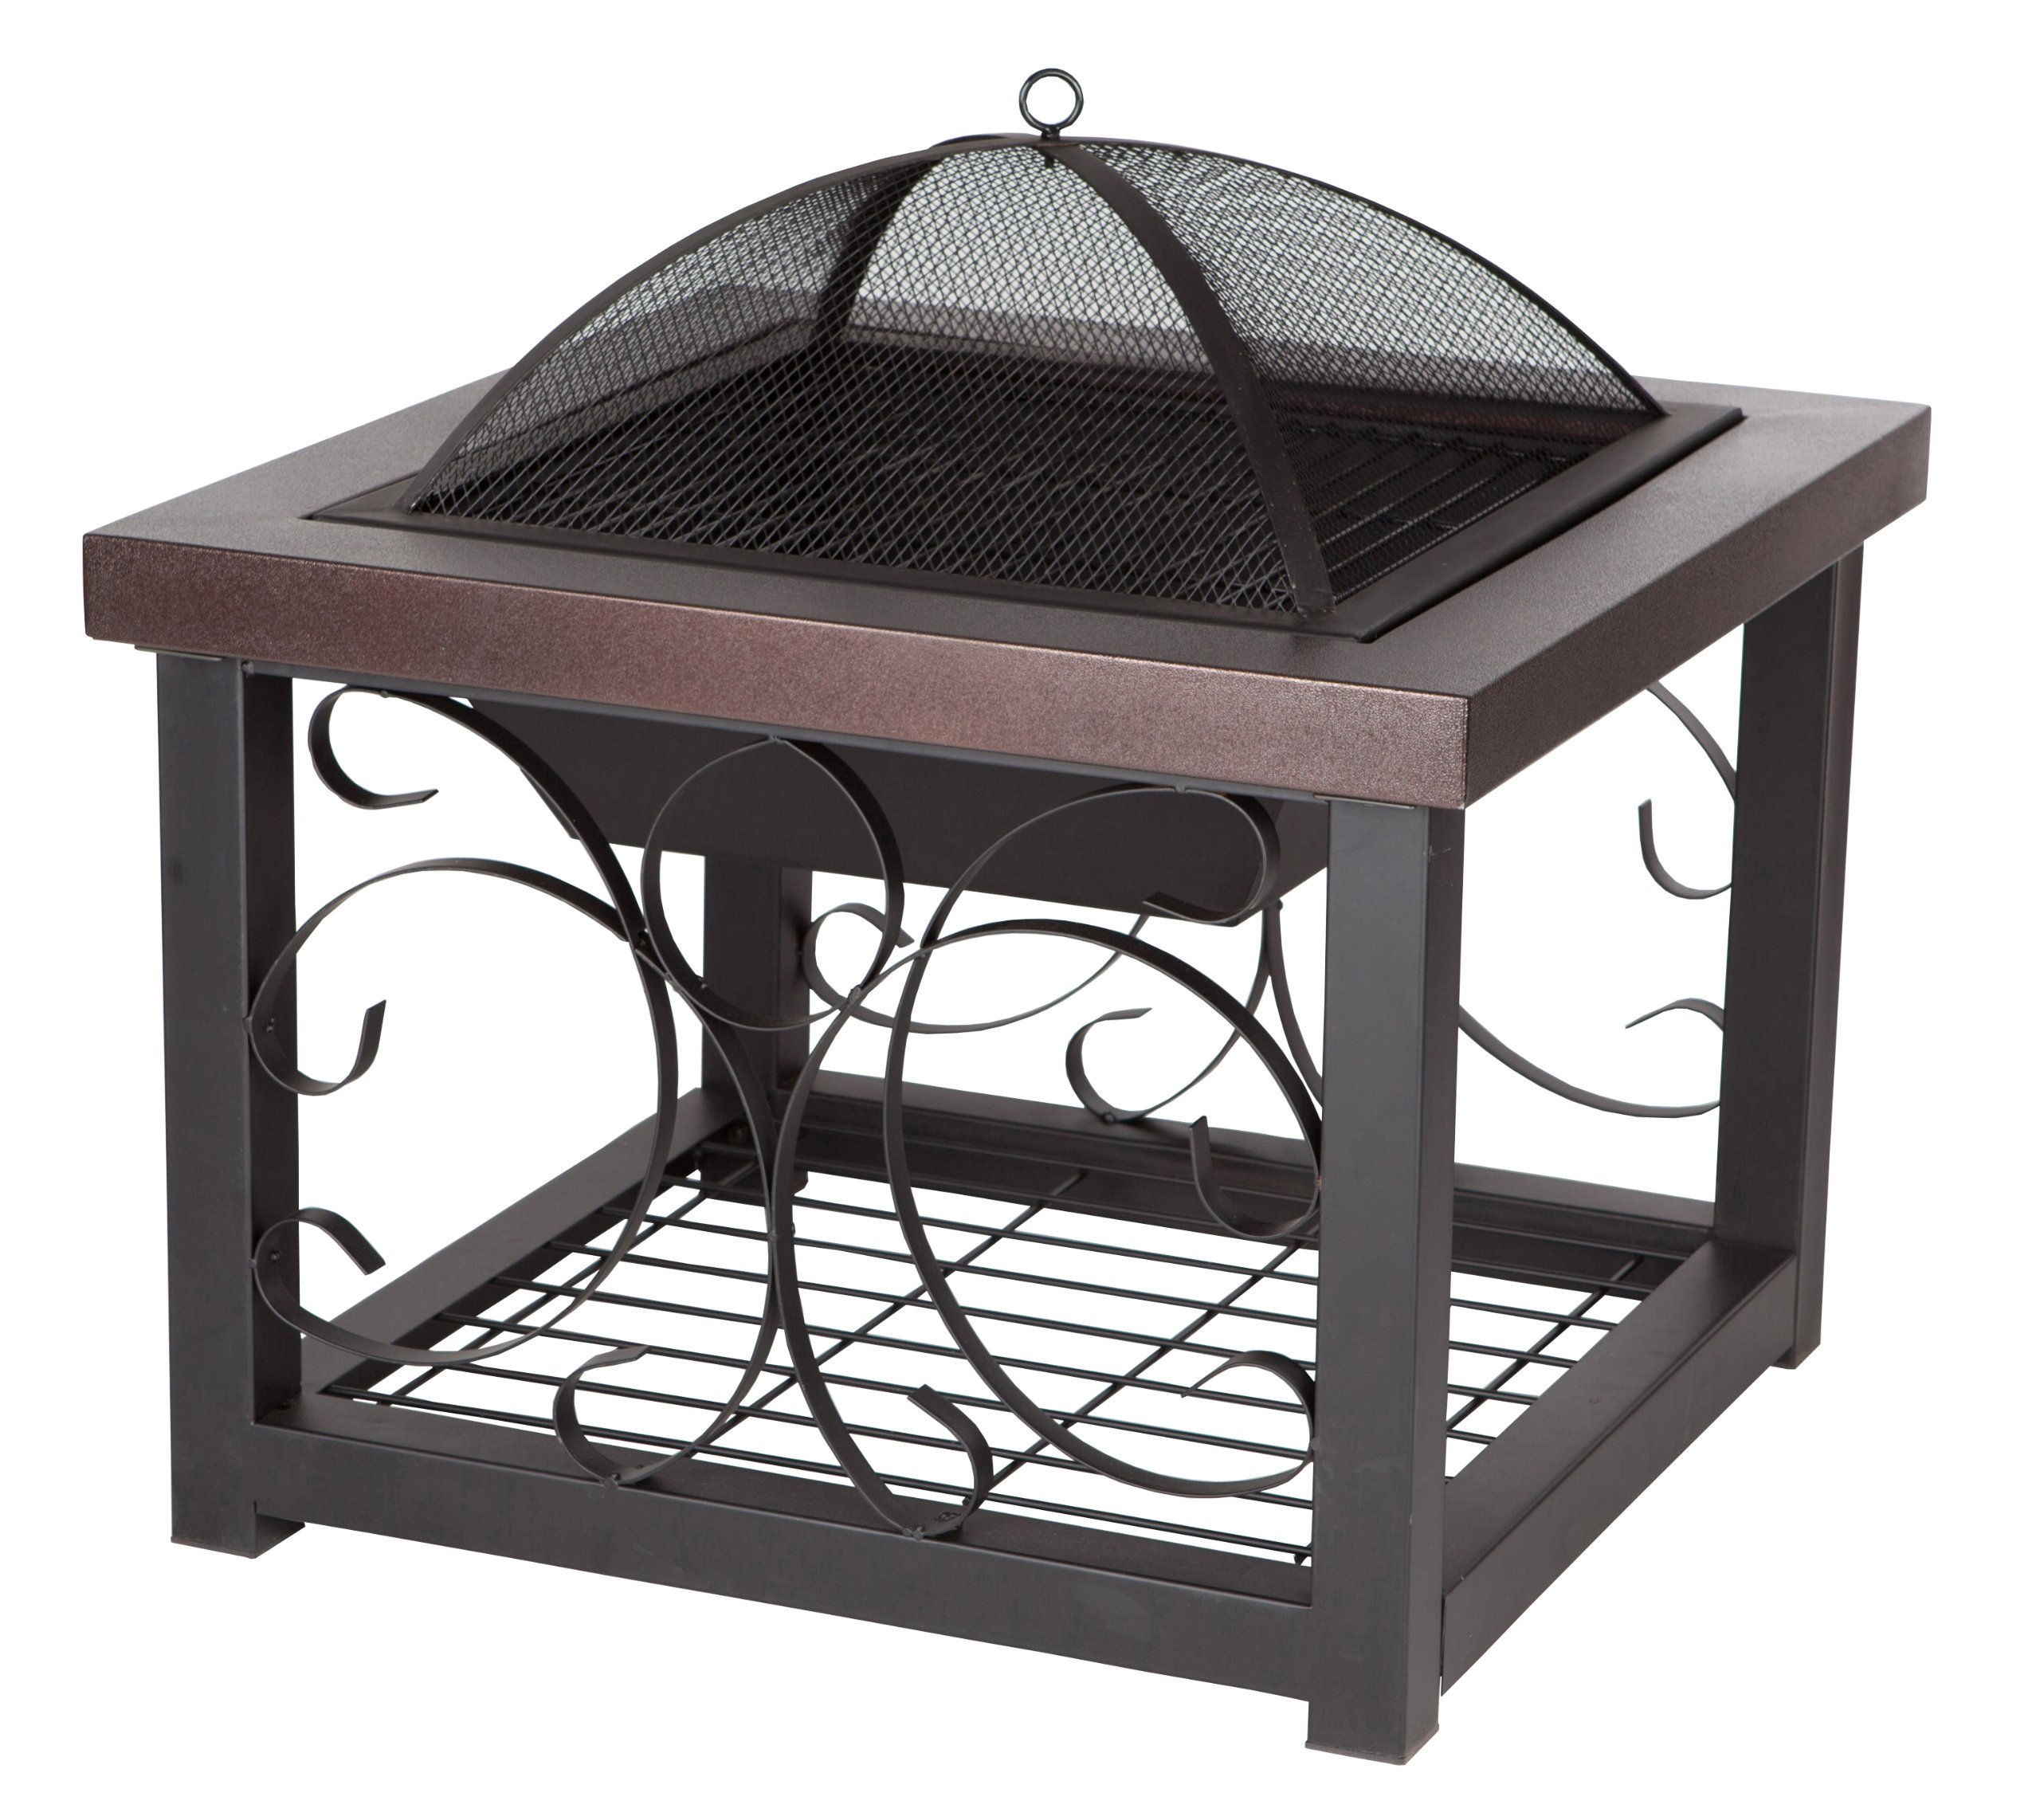 Fire Sense Cocktail Table Fire Pit, Hammer Tone Bronze Finish by Fire Sense